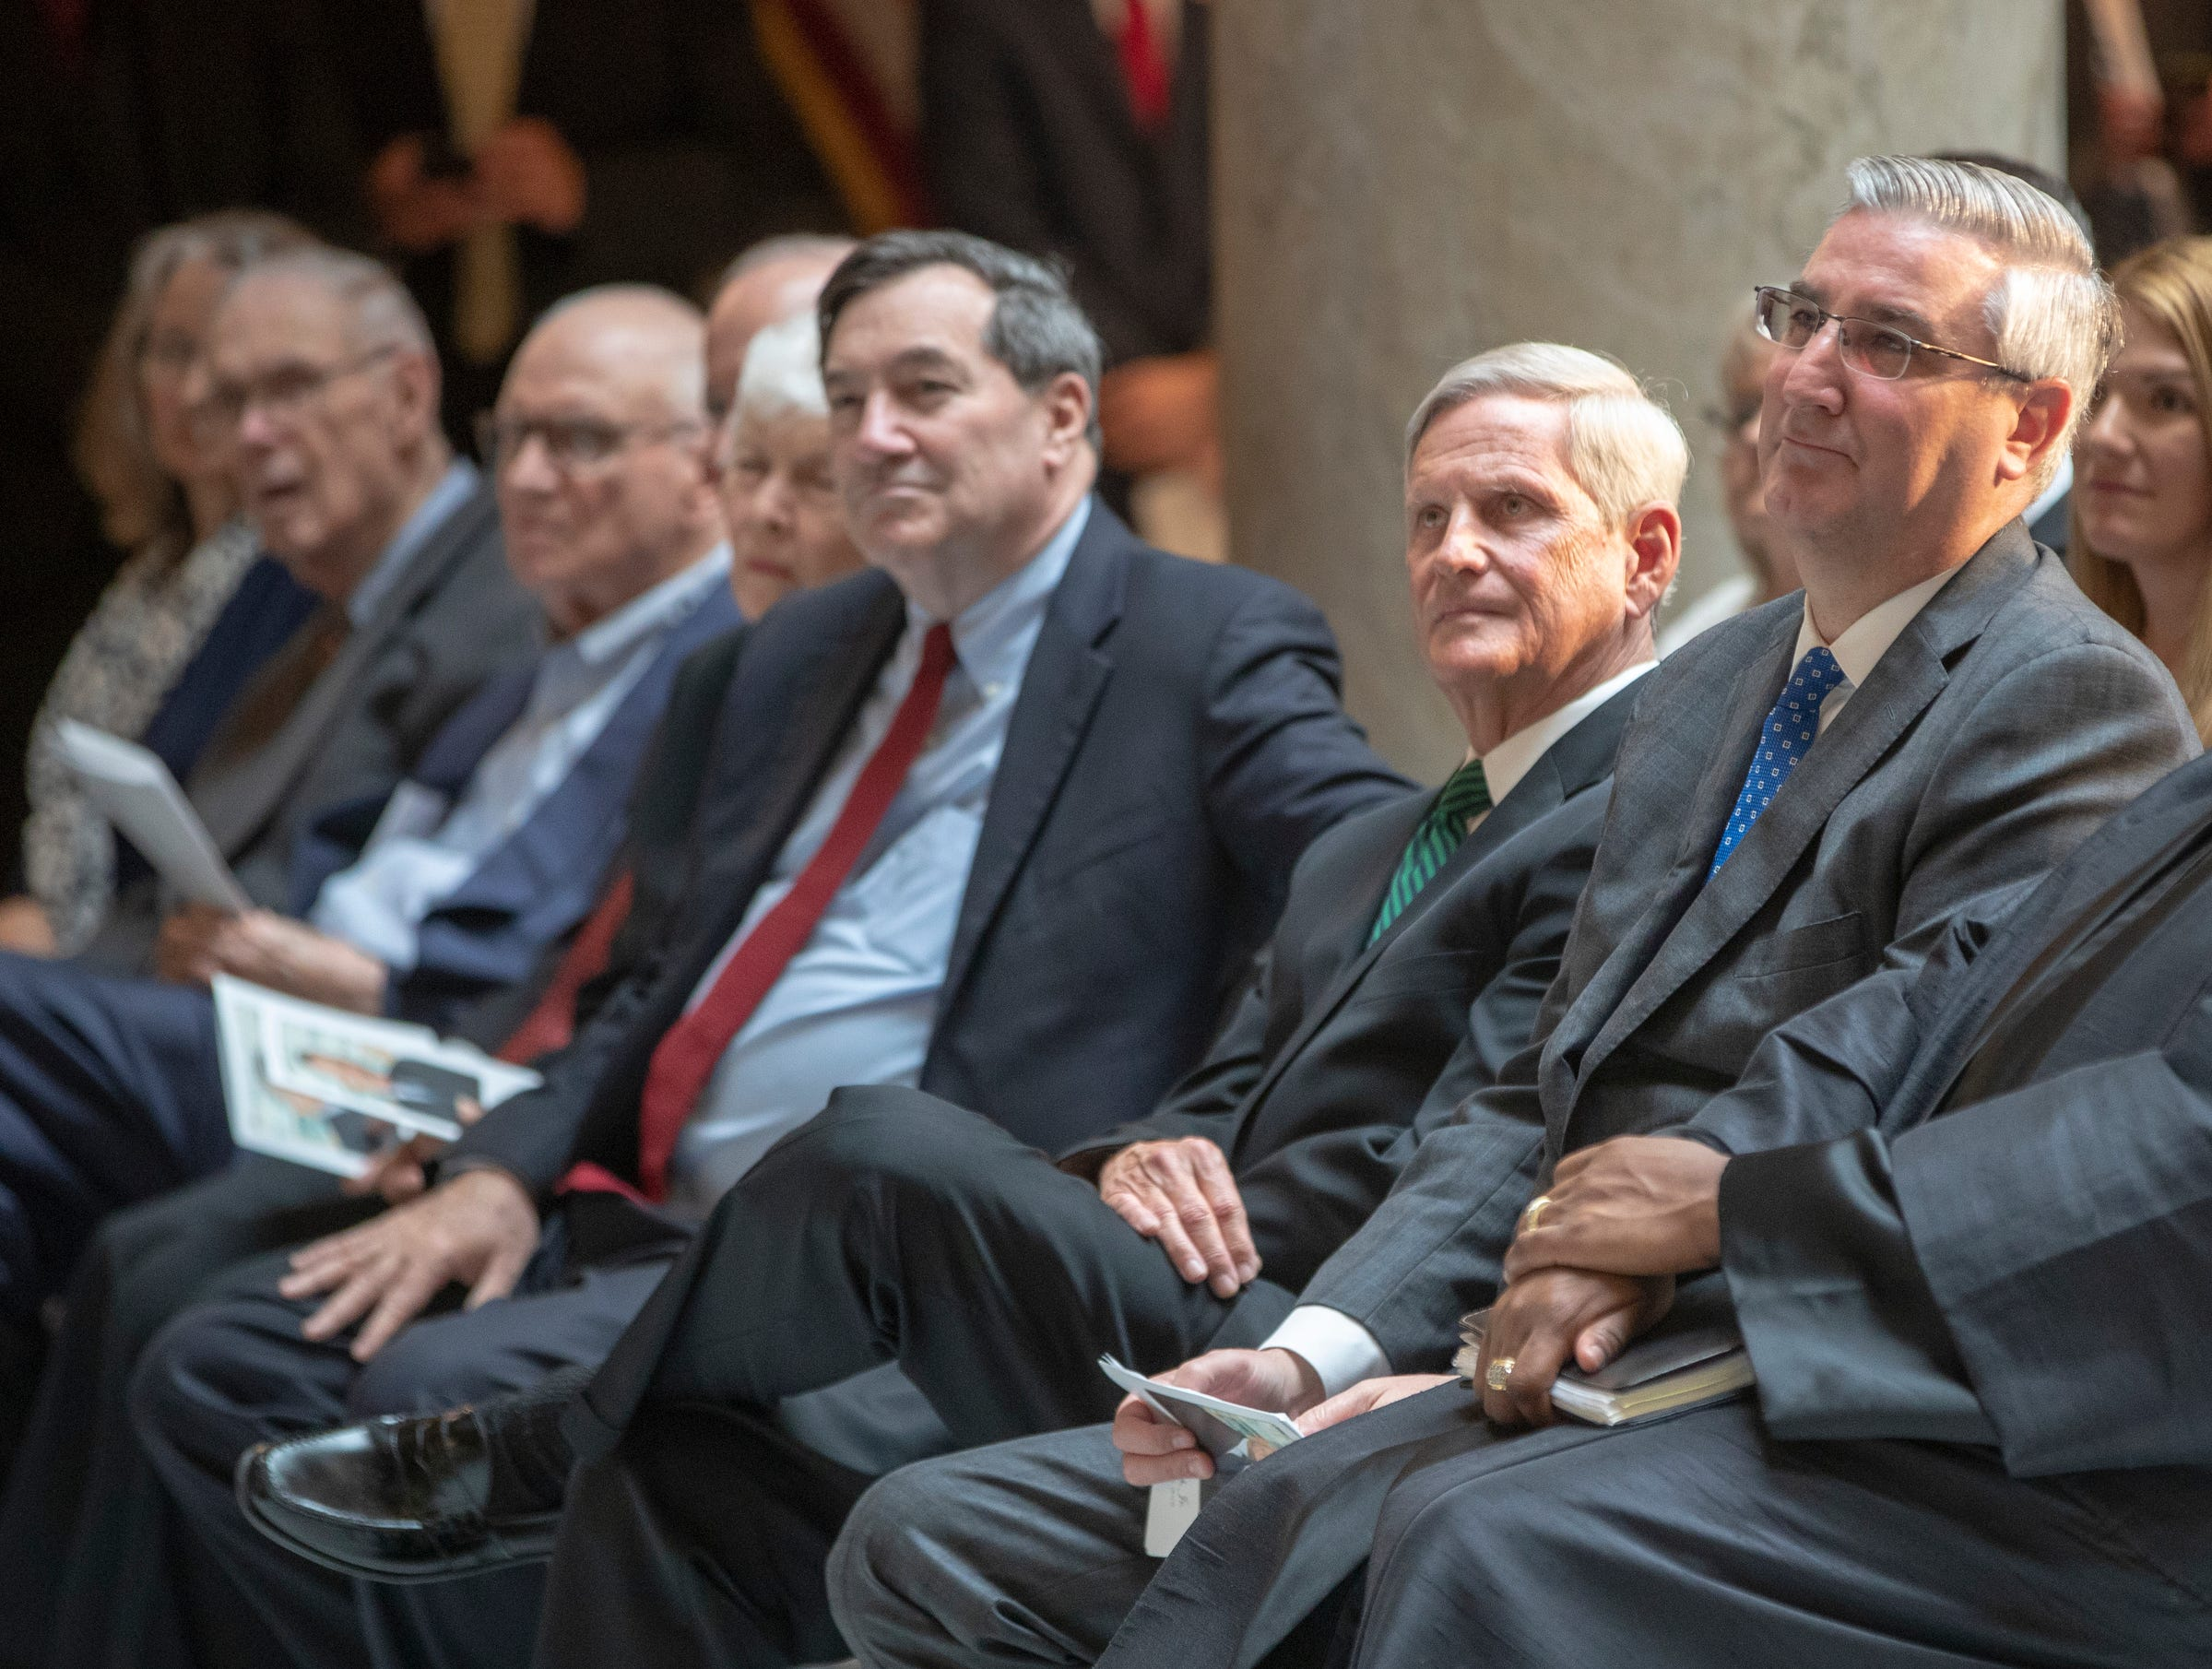 Dignitaries during a service for Indiana's Birch Bayh, who died on March 14, and was a three-term U.S. Senator, Indiana Statehouse, Indianapolis, Wednesday, May 1, 2019.